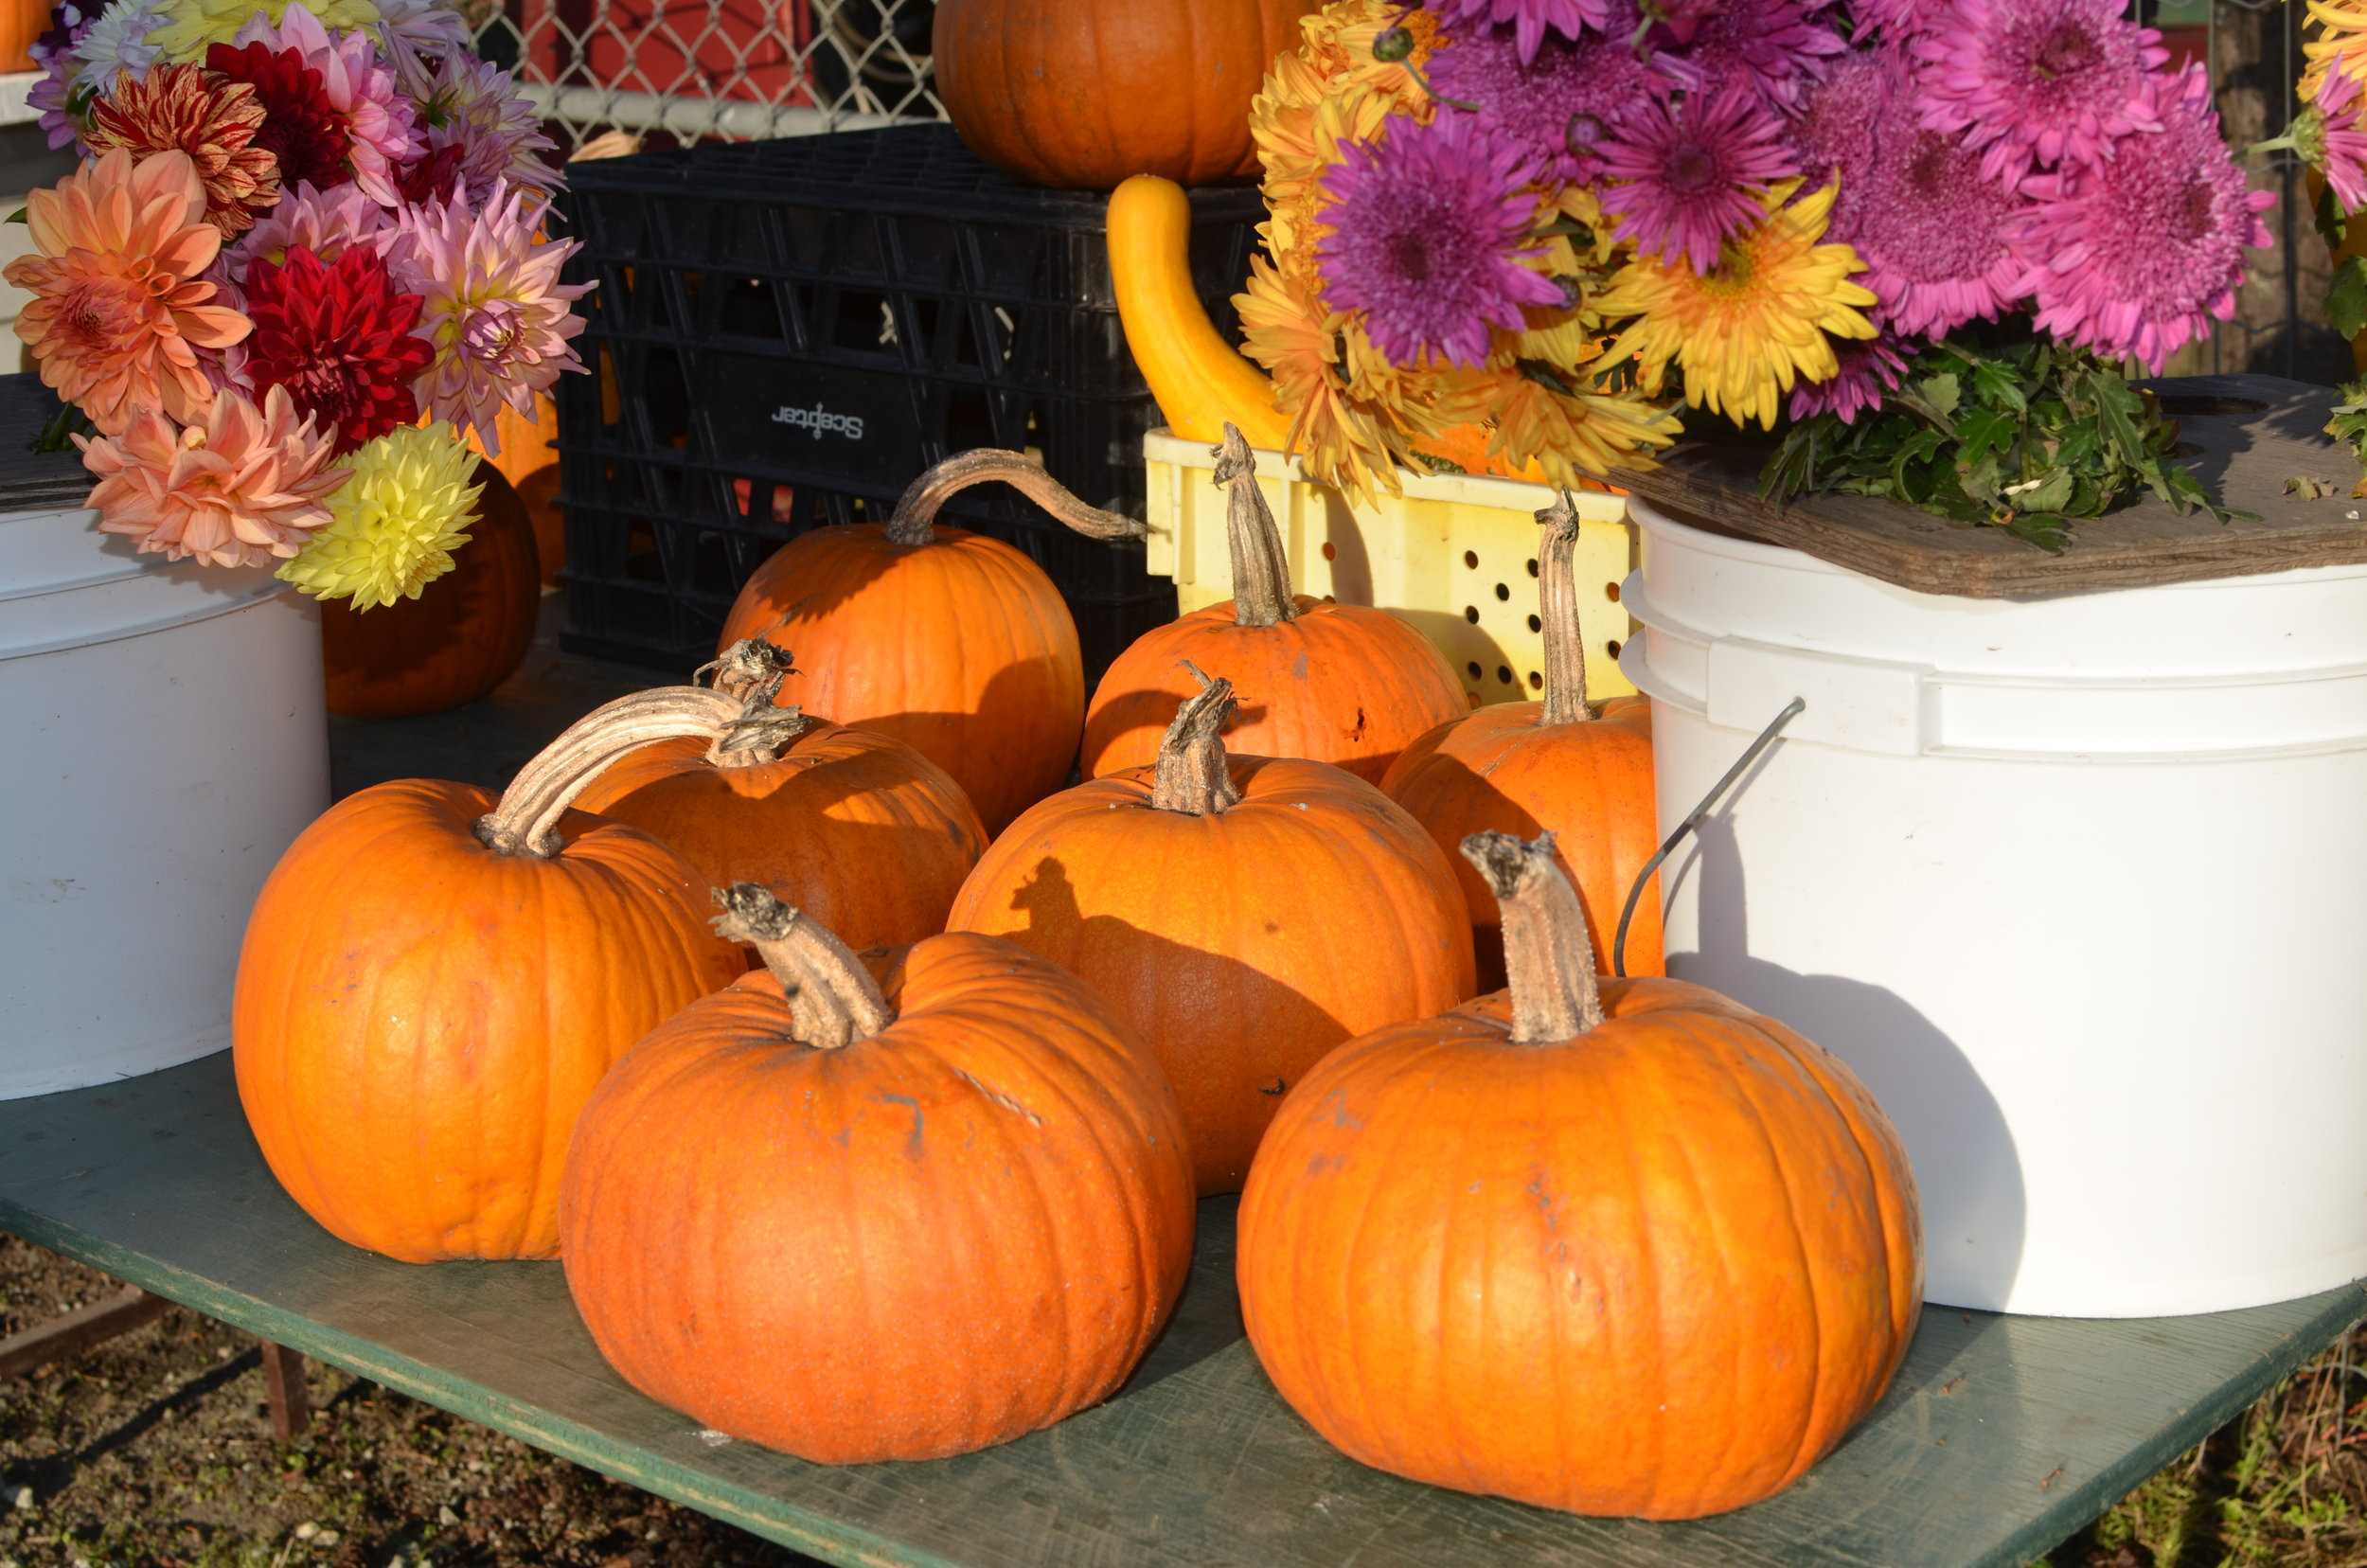 Sugar Pie Pumpkin - Classically used for pumpkin pie.Ideal for soups or roasted.